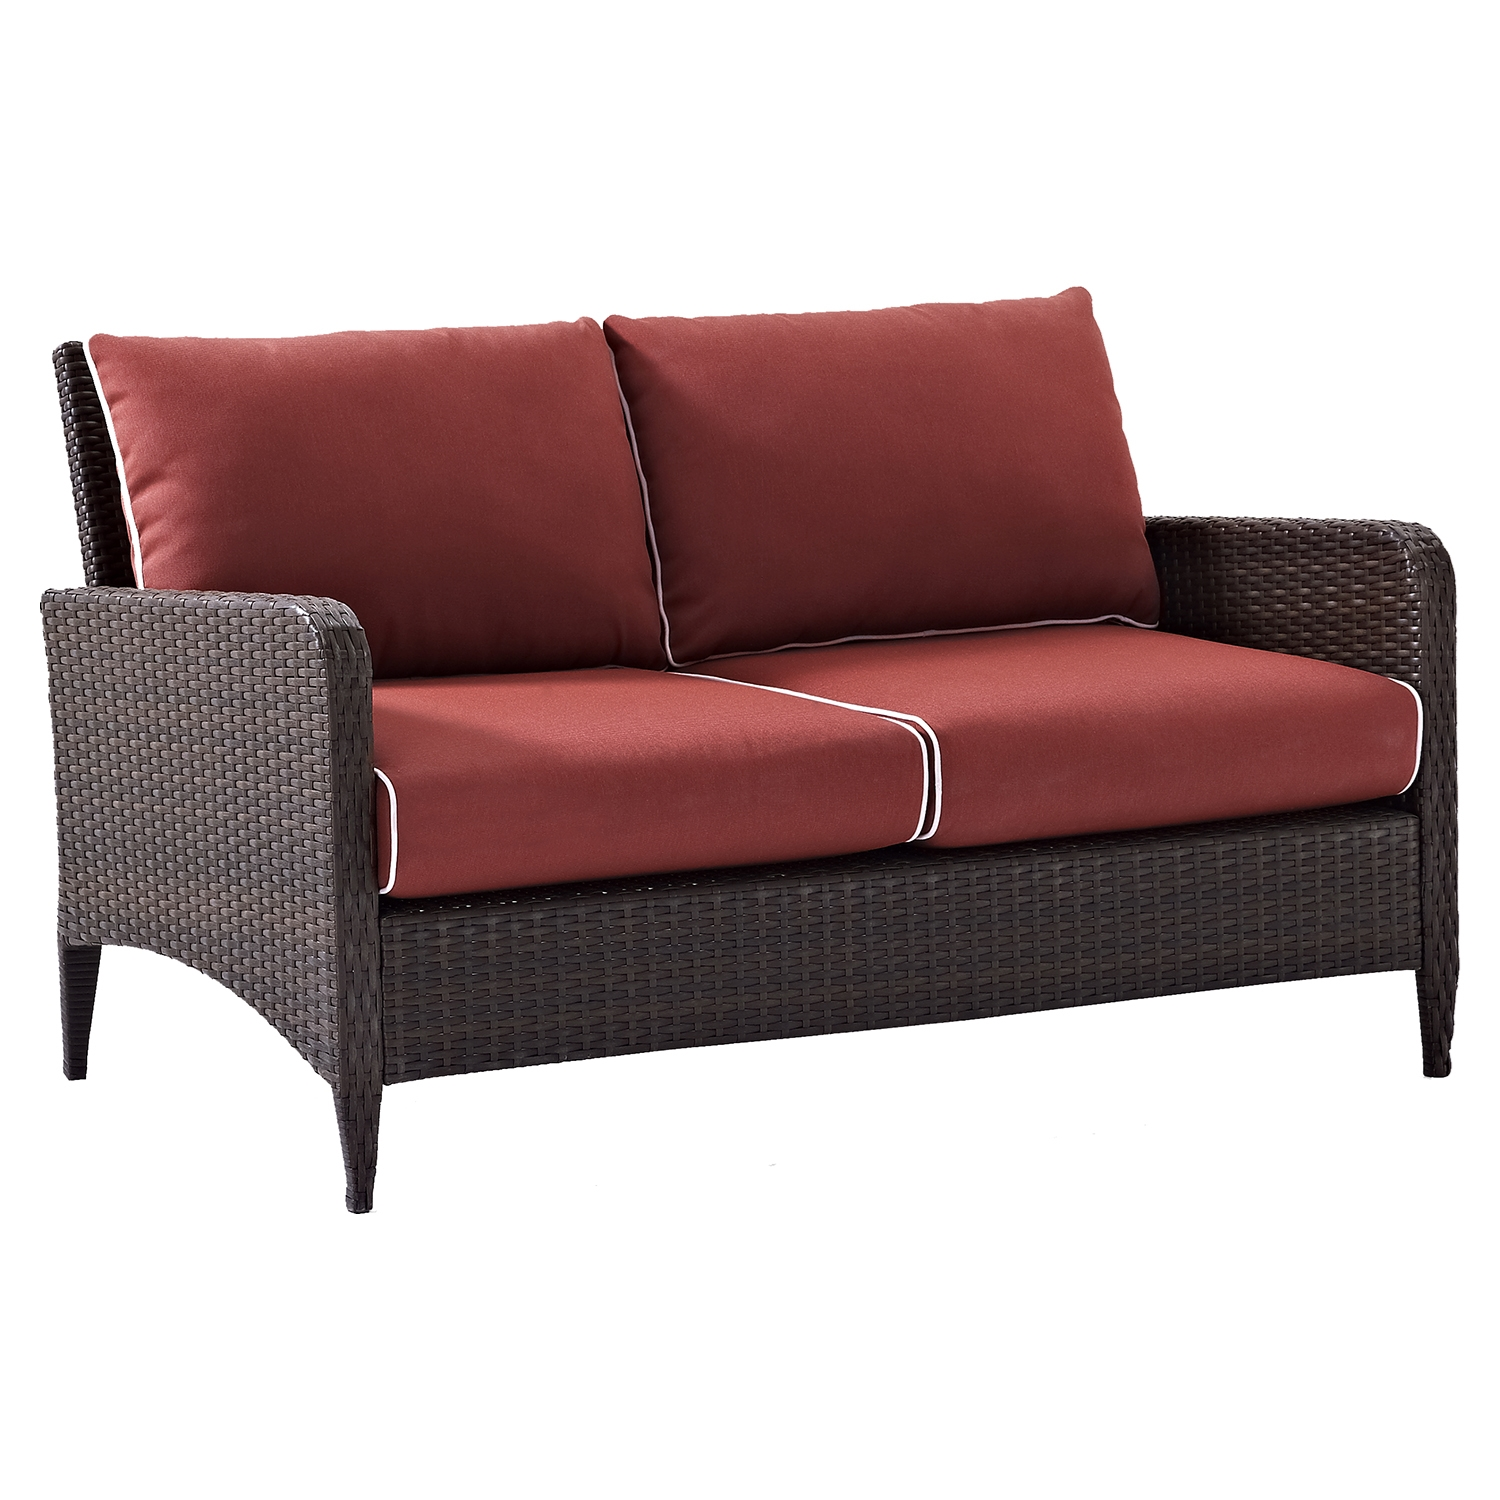 Kiawah Outdoor Wicker Loveseat with Sangria Cushions - CROS-CO7117-BR